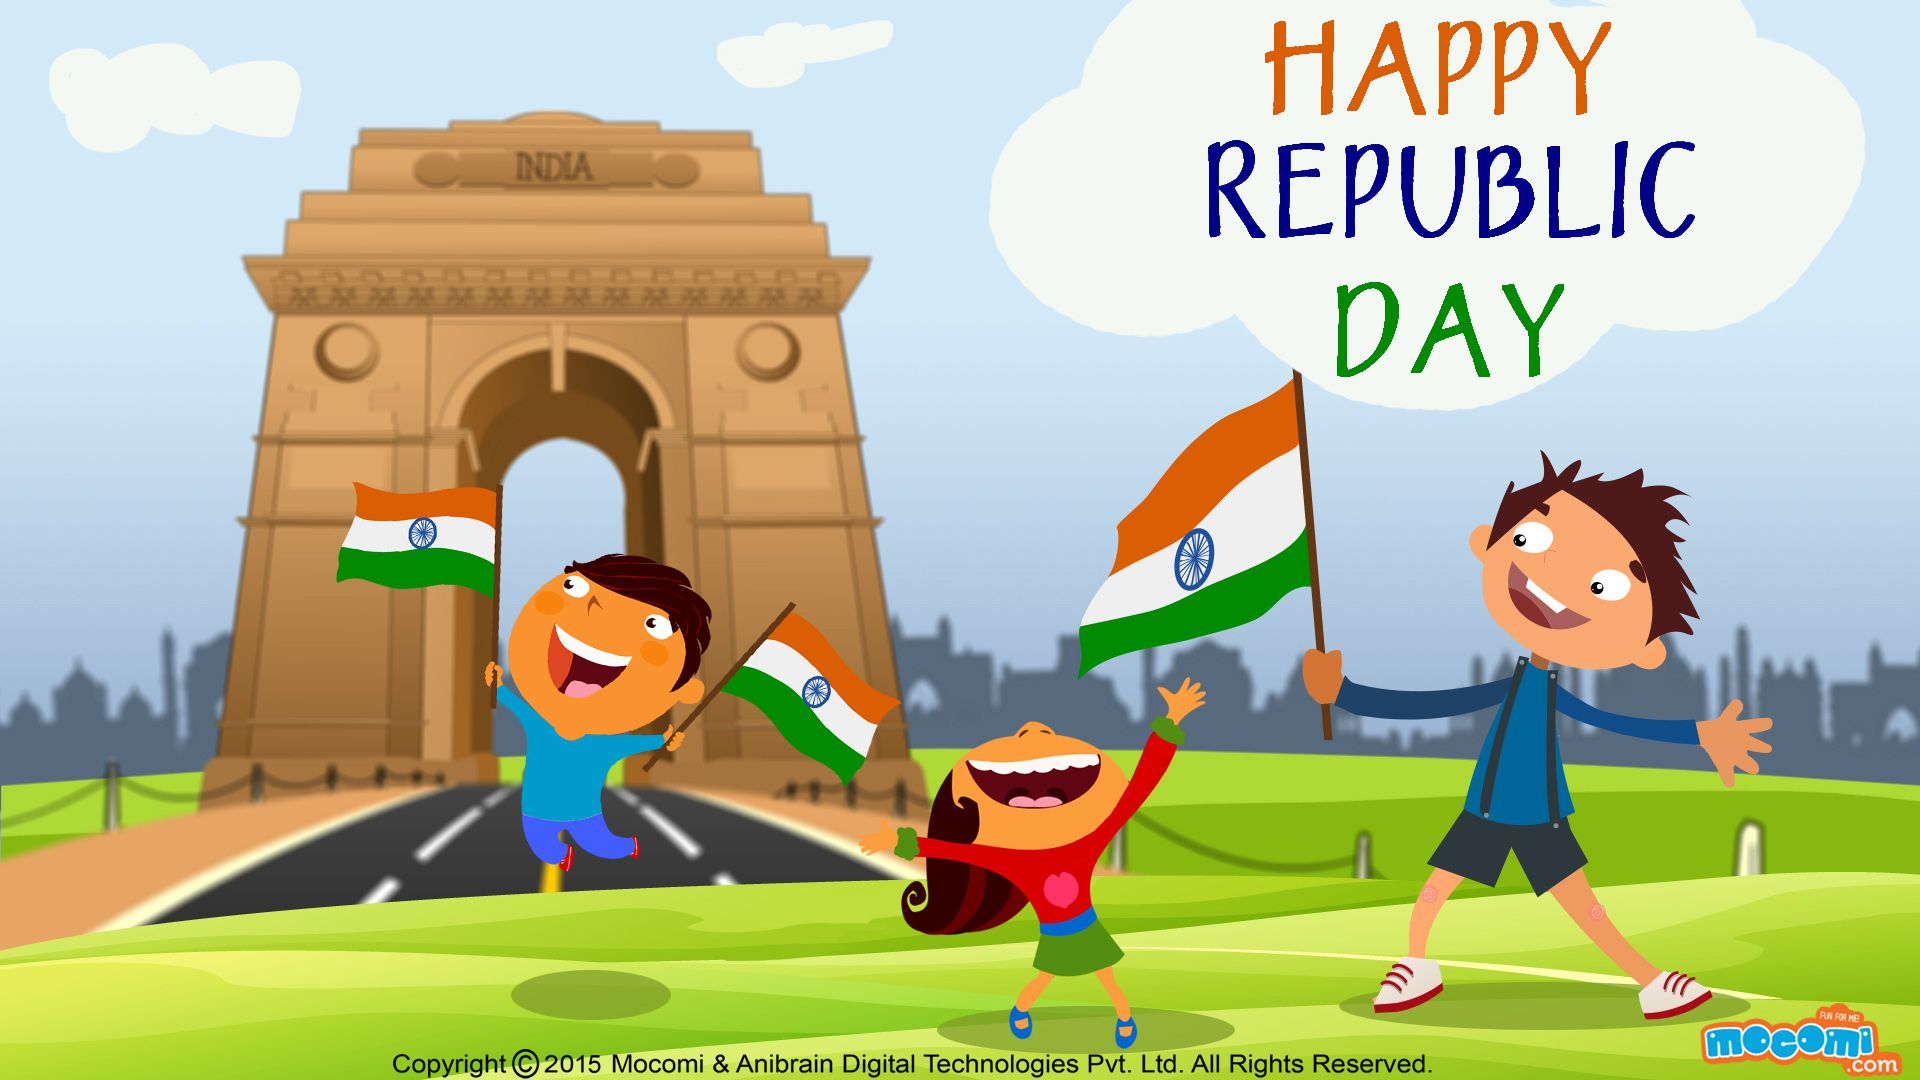 Happy Republic Day Wallpaper 8 Desktop Wallpaper For Kids Mocomi Happy Independence Day India Republic Day Happy Republic Day Wallpaper